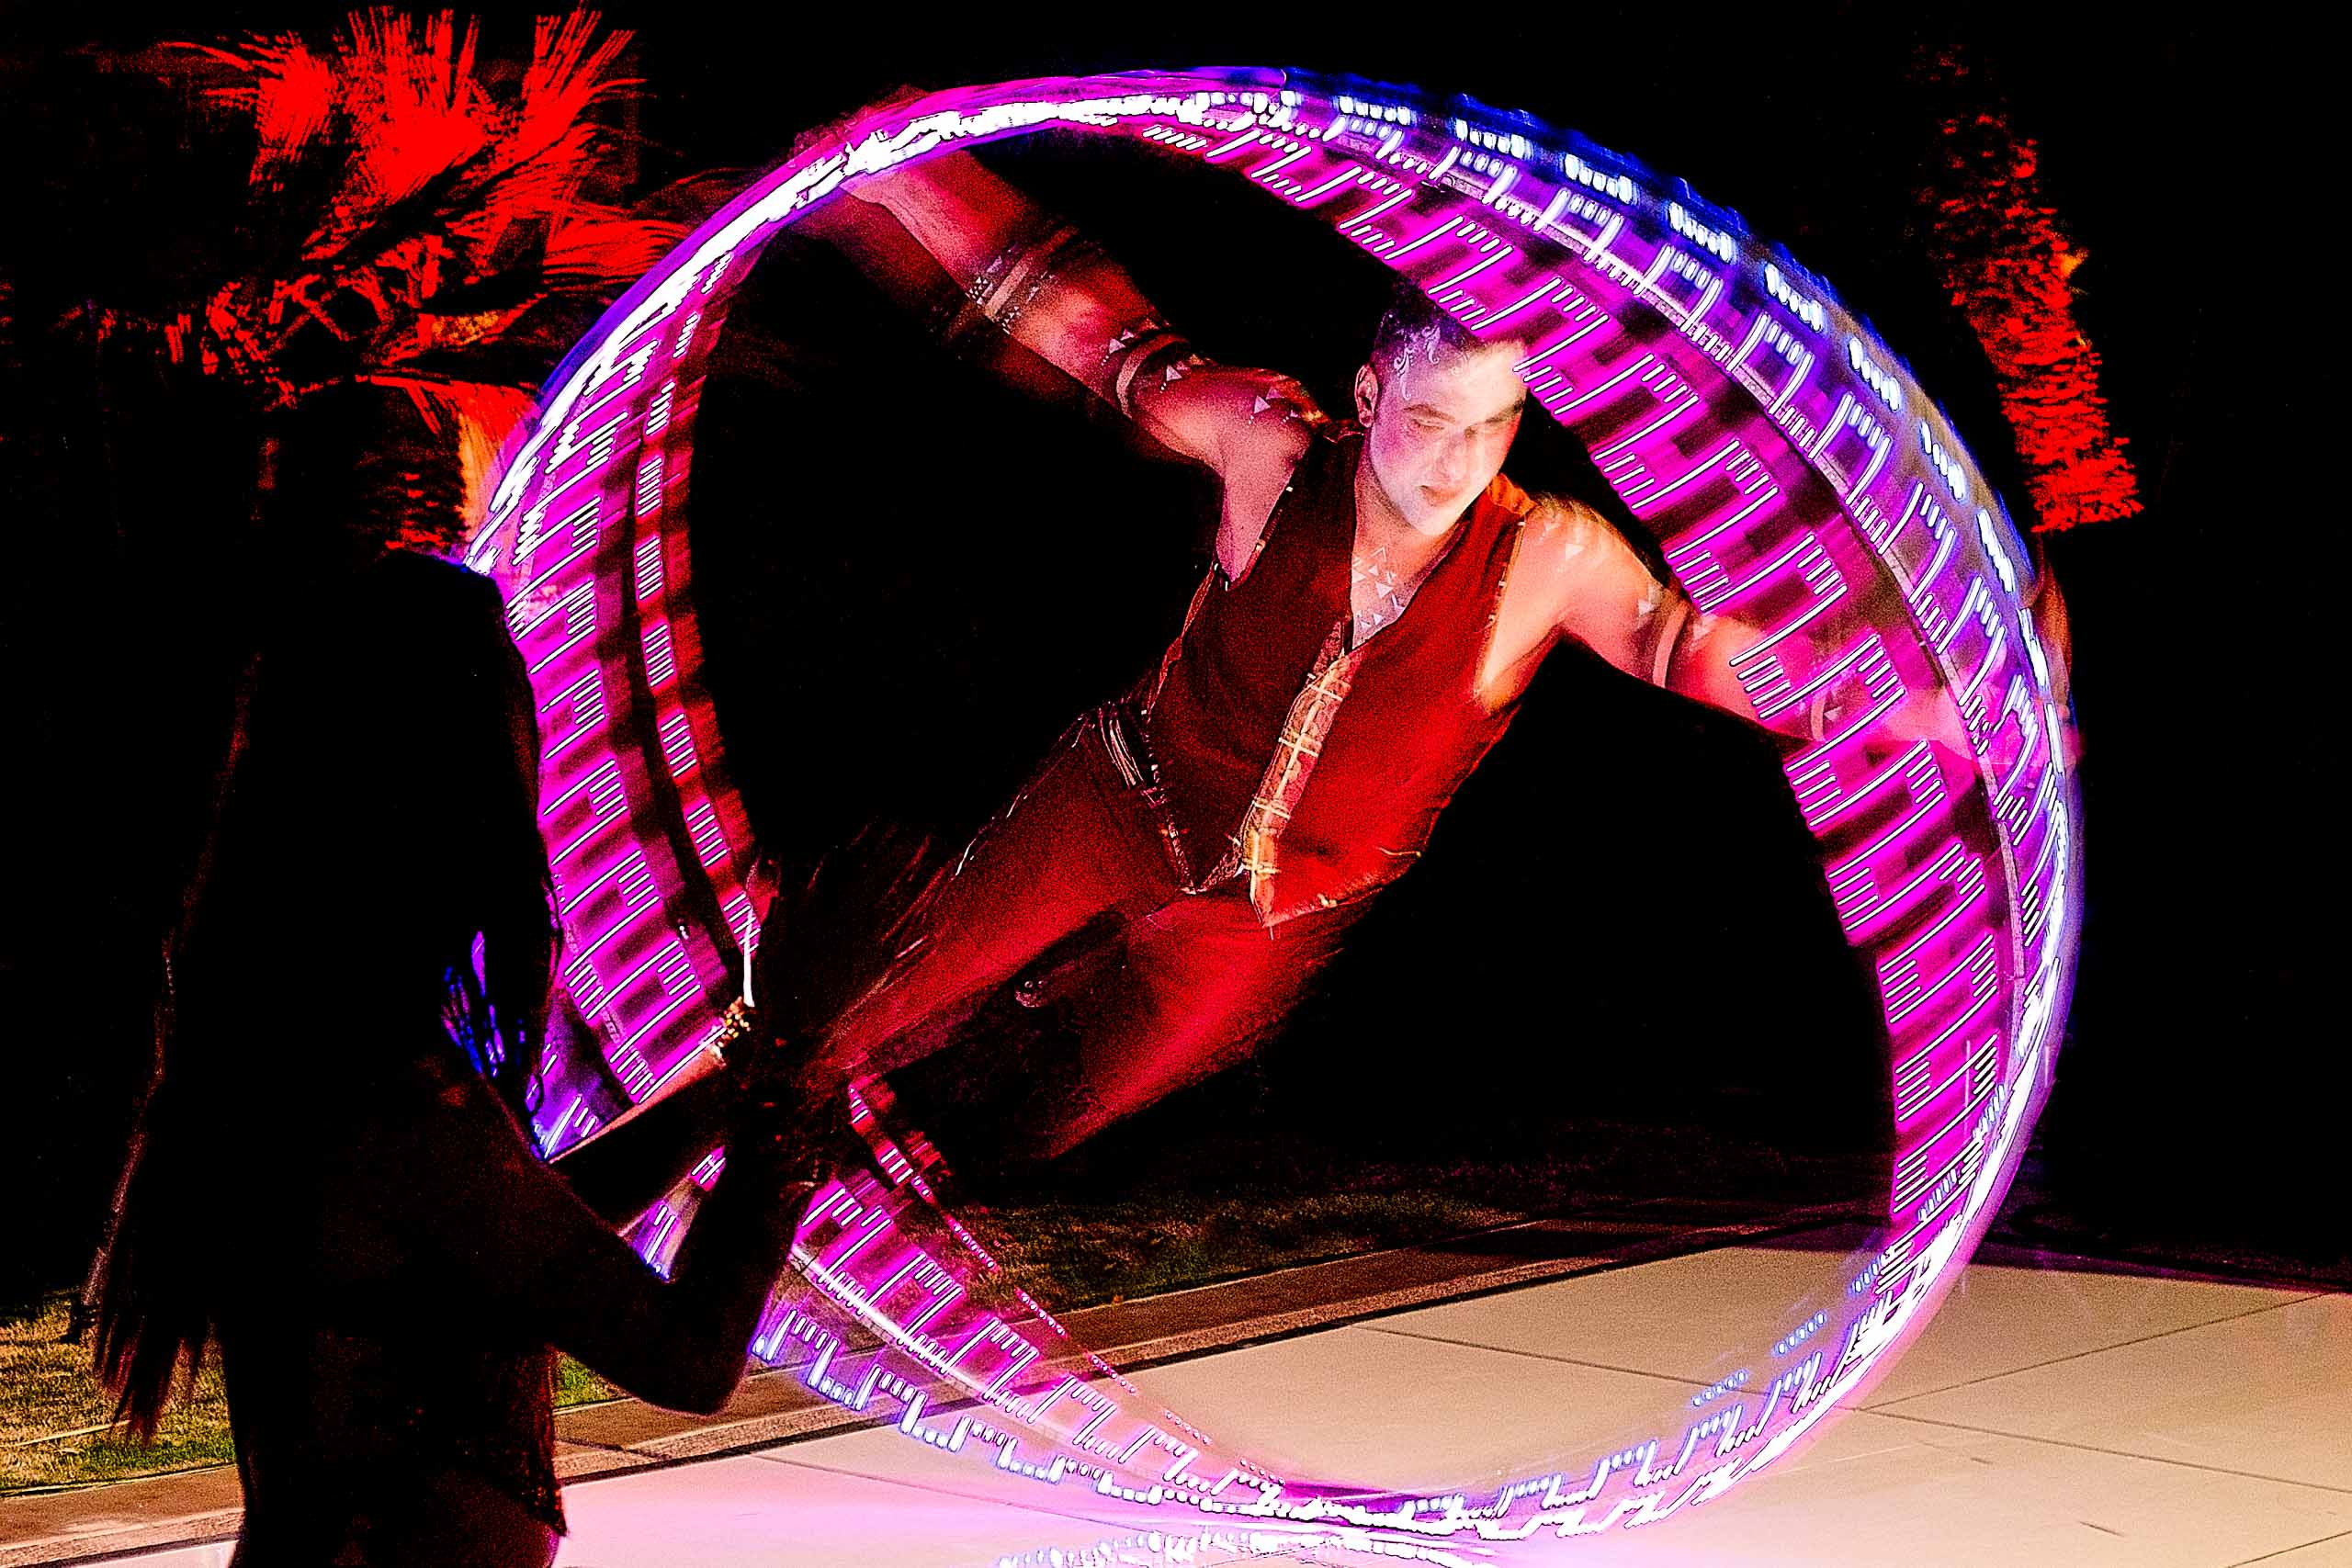 Circus performers at a Merv Griffin Estate wedding in Palm Springs